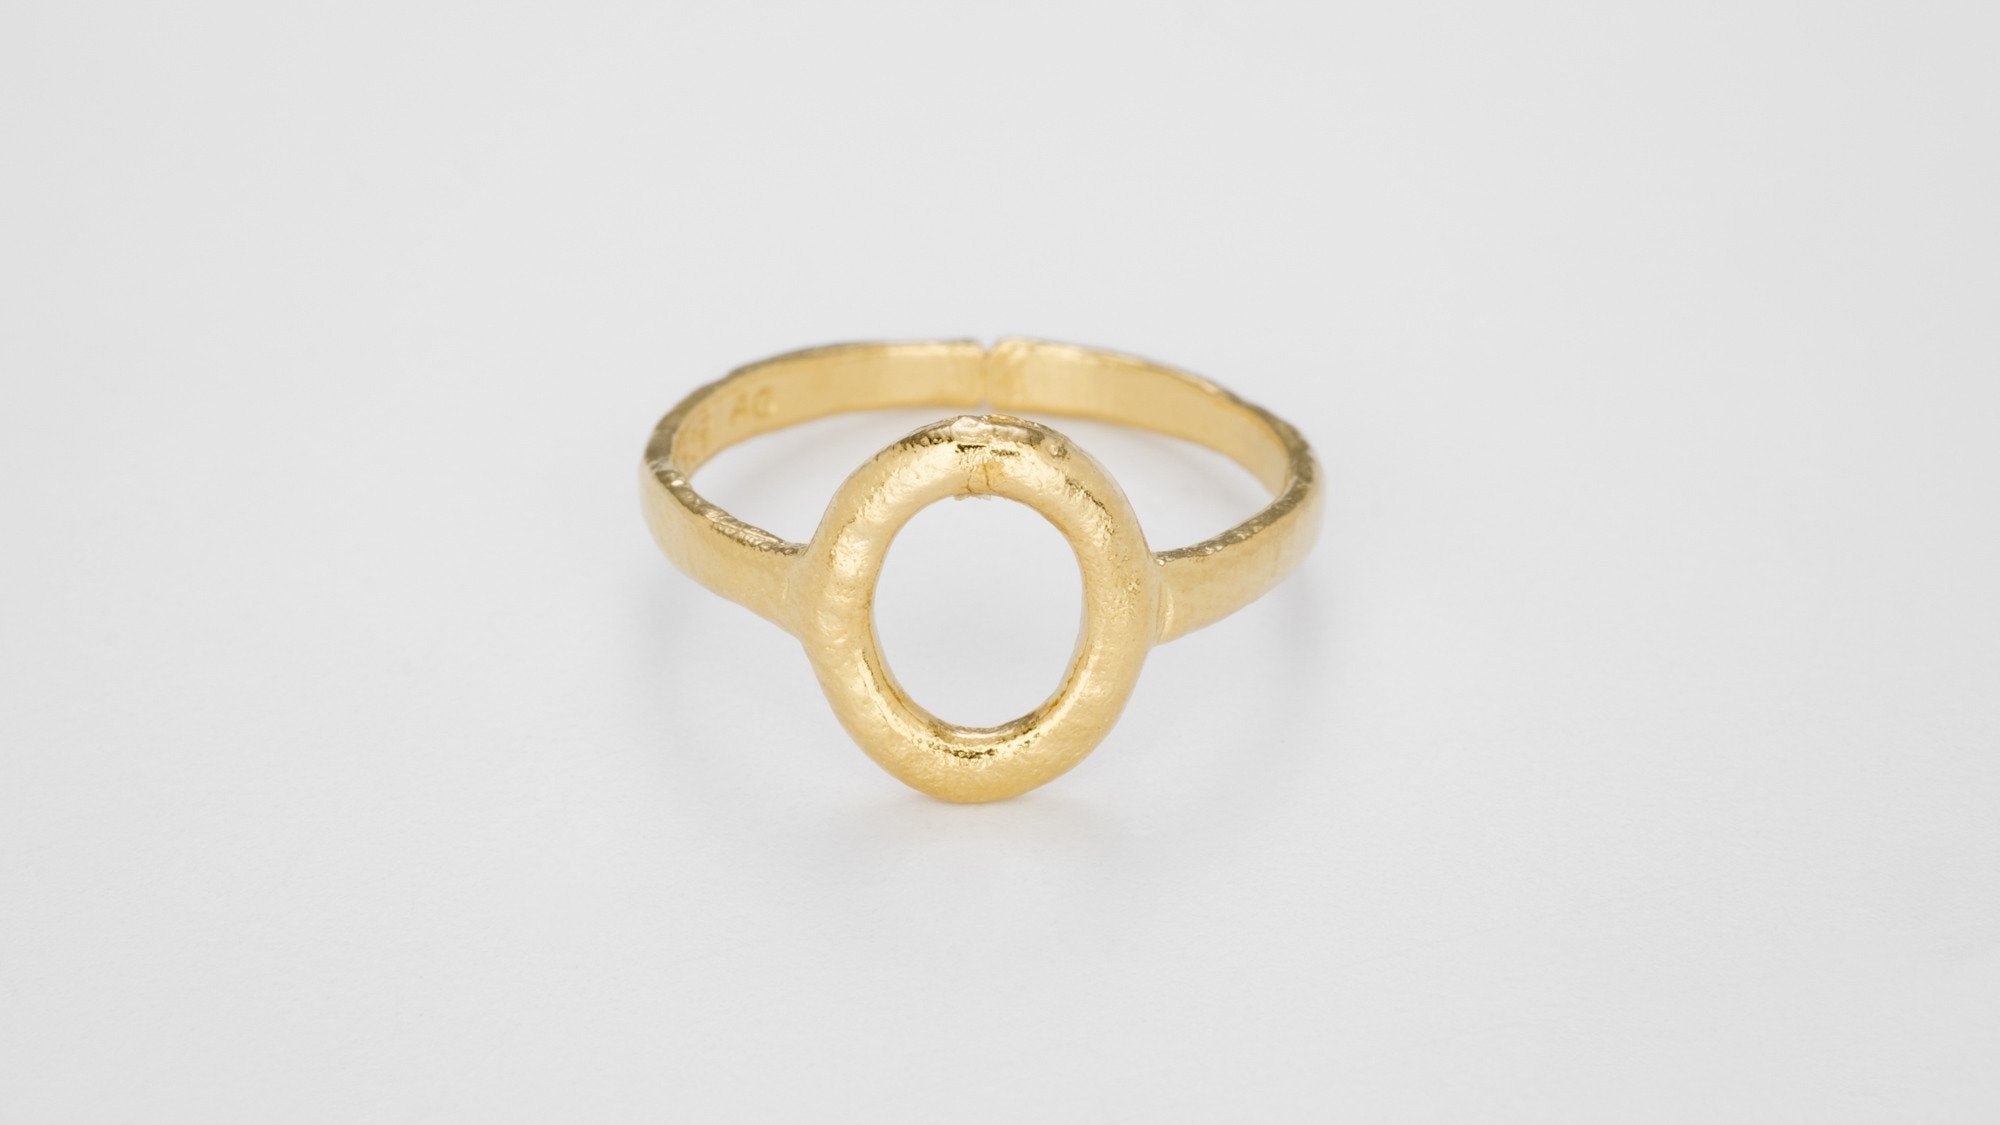 sewart contemporary gold rings product yellow gallery white plymouth devon ring victoria jewellery